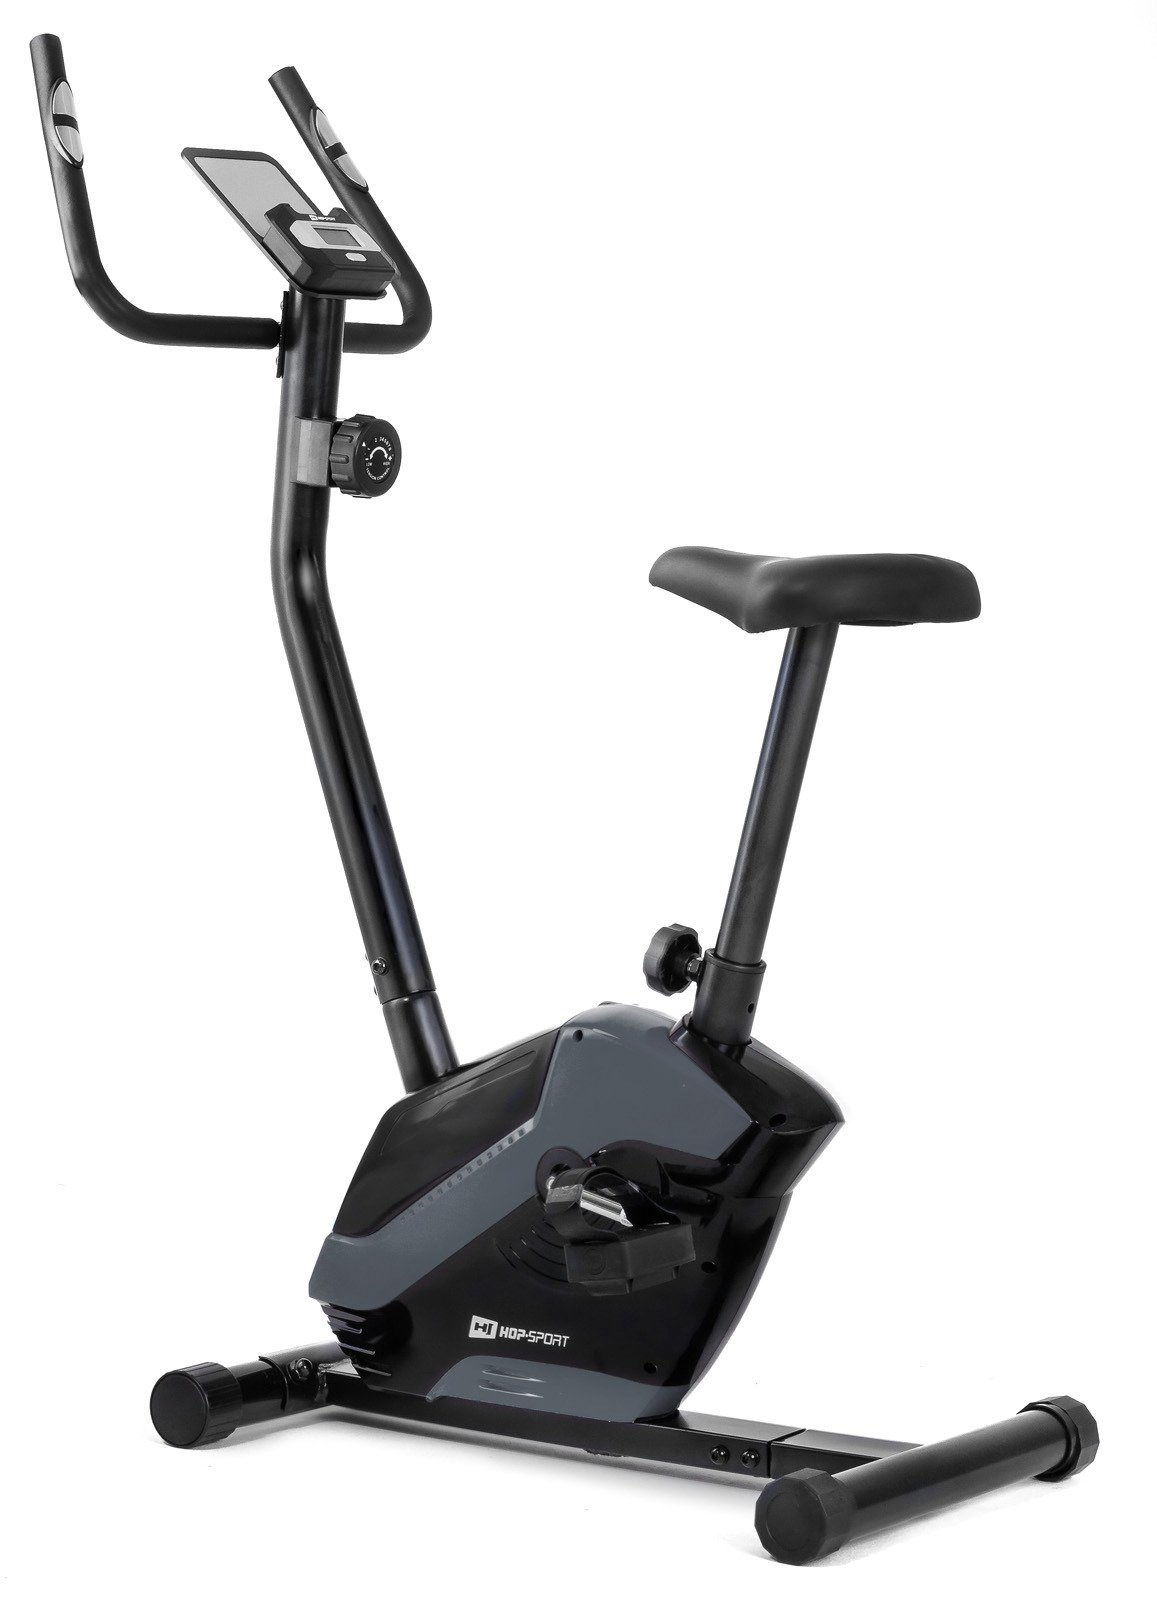 Rower magnetyczny HS-045H Eos szary - Hop Sport